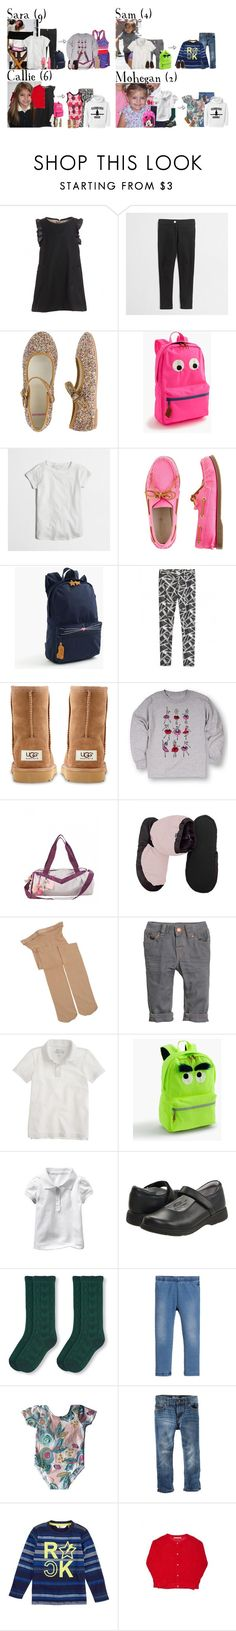 """""""Tuesday // School, Recital Prep, Activities & Dinner // 12/6/16"""" by graywolf145 ❤ liked on Polyvore featuring J.Crew, UGG Australia, Bloch, Capezio, Eddie Bauer, Old Navy, School Issue, Joules, Carter's and Bonpoint"""